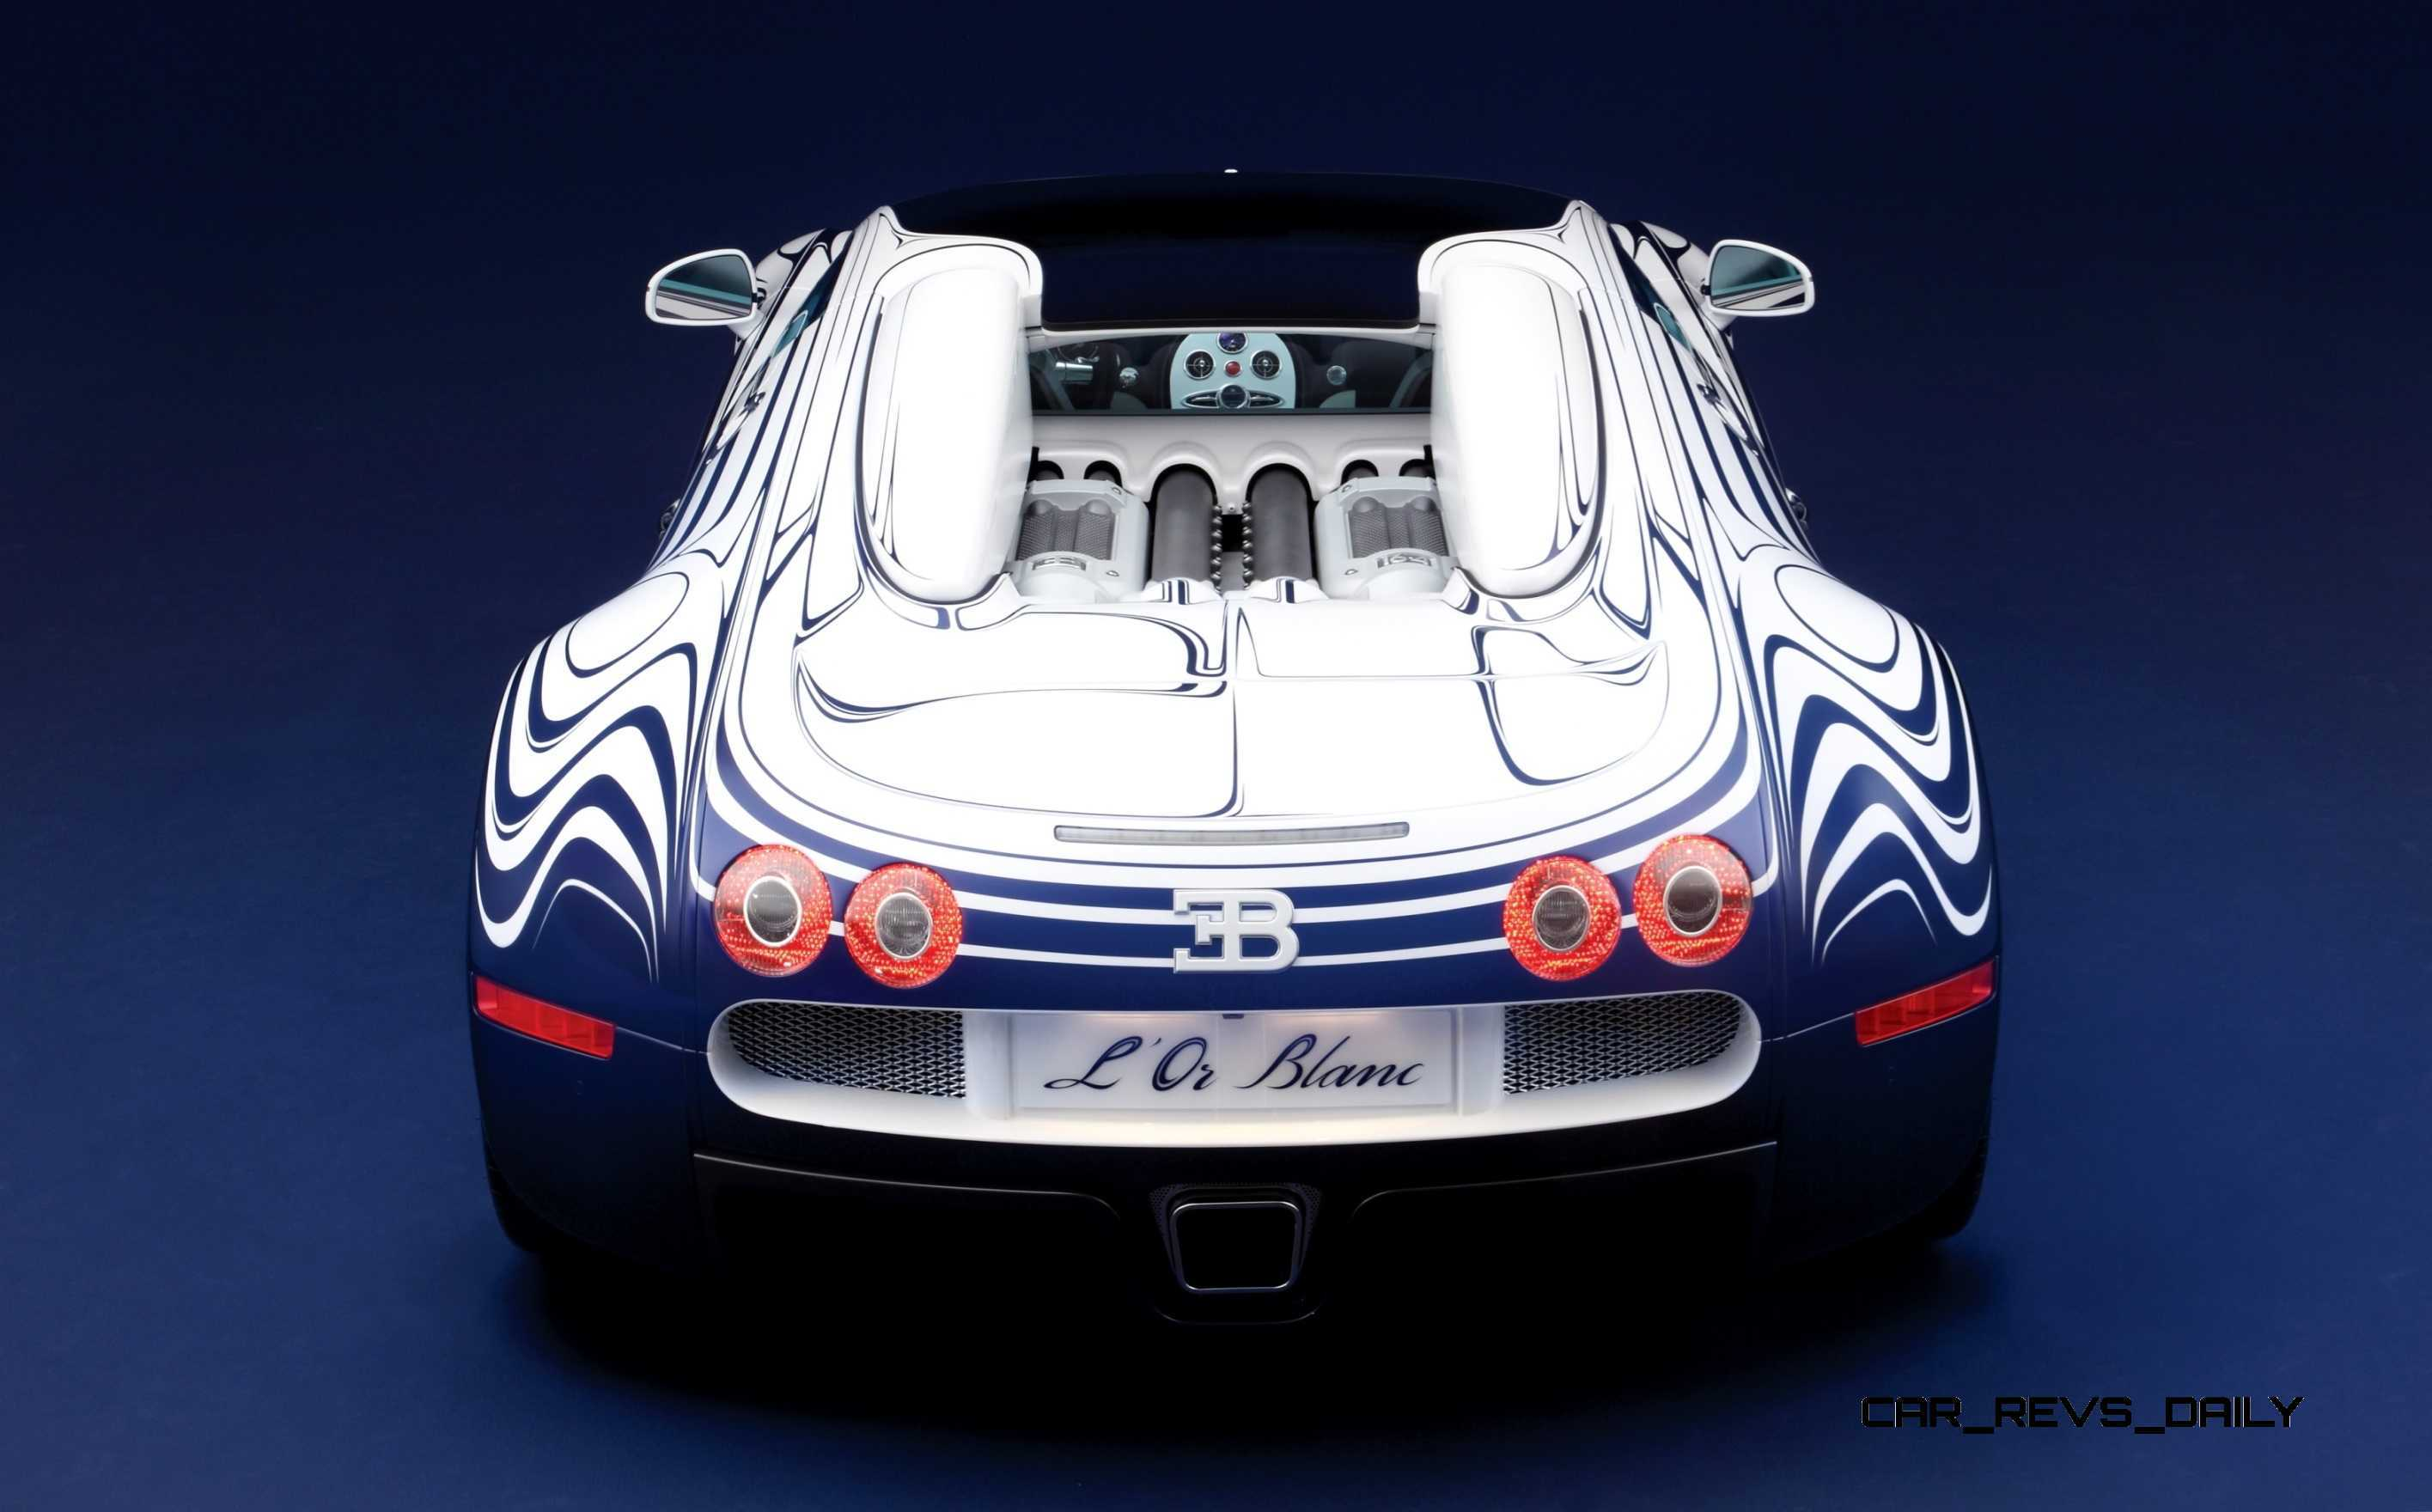 gallery moti by edition photos vivere autoblog mansory diamond geneva bugatti photo